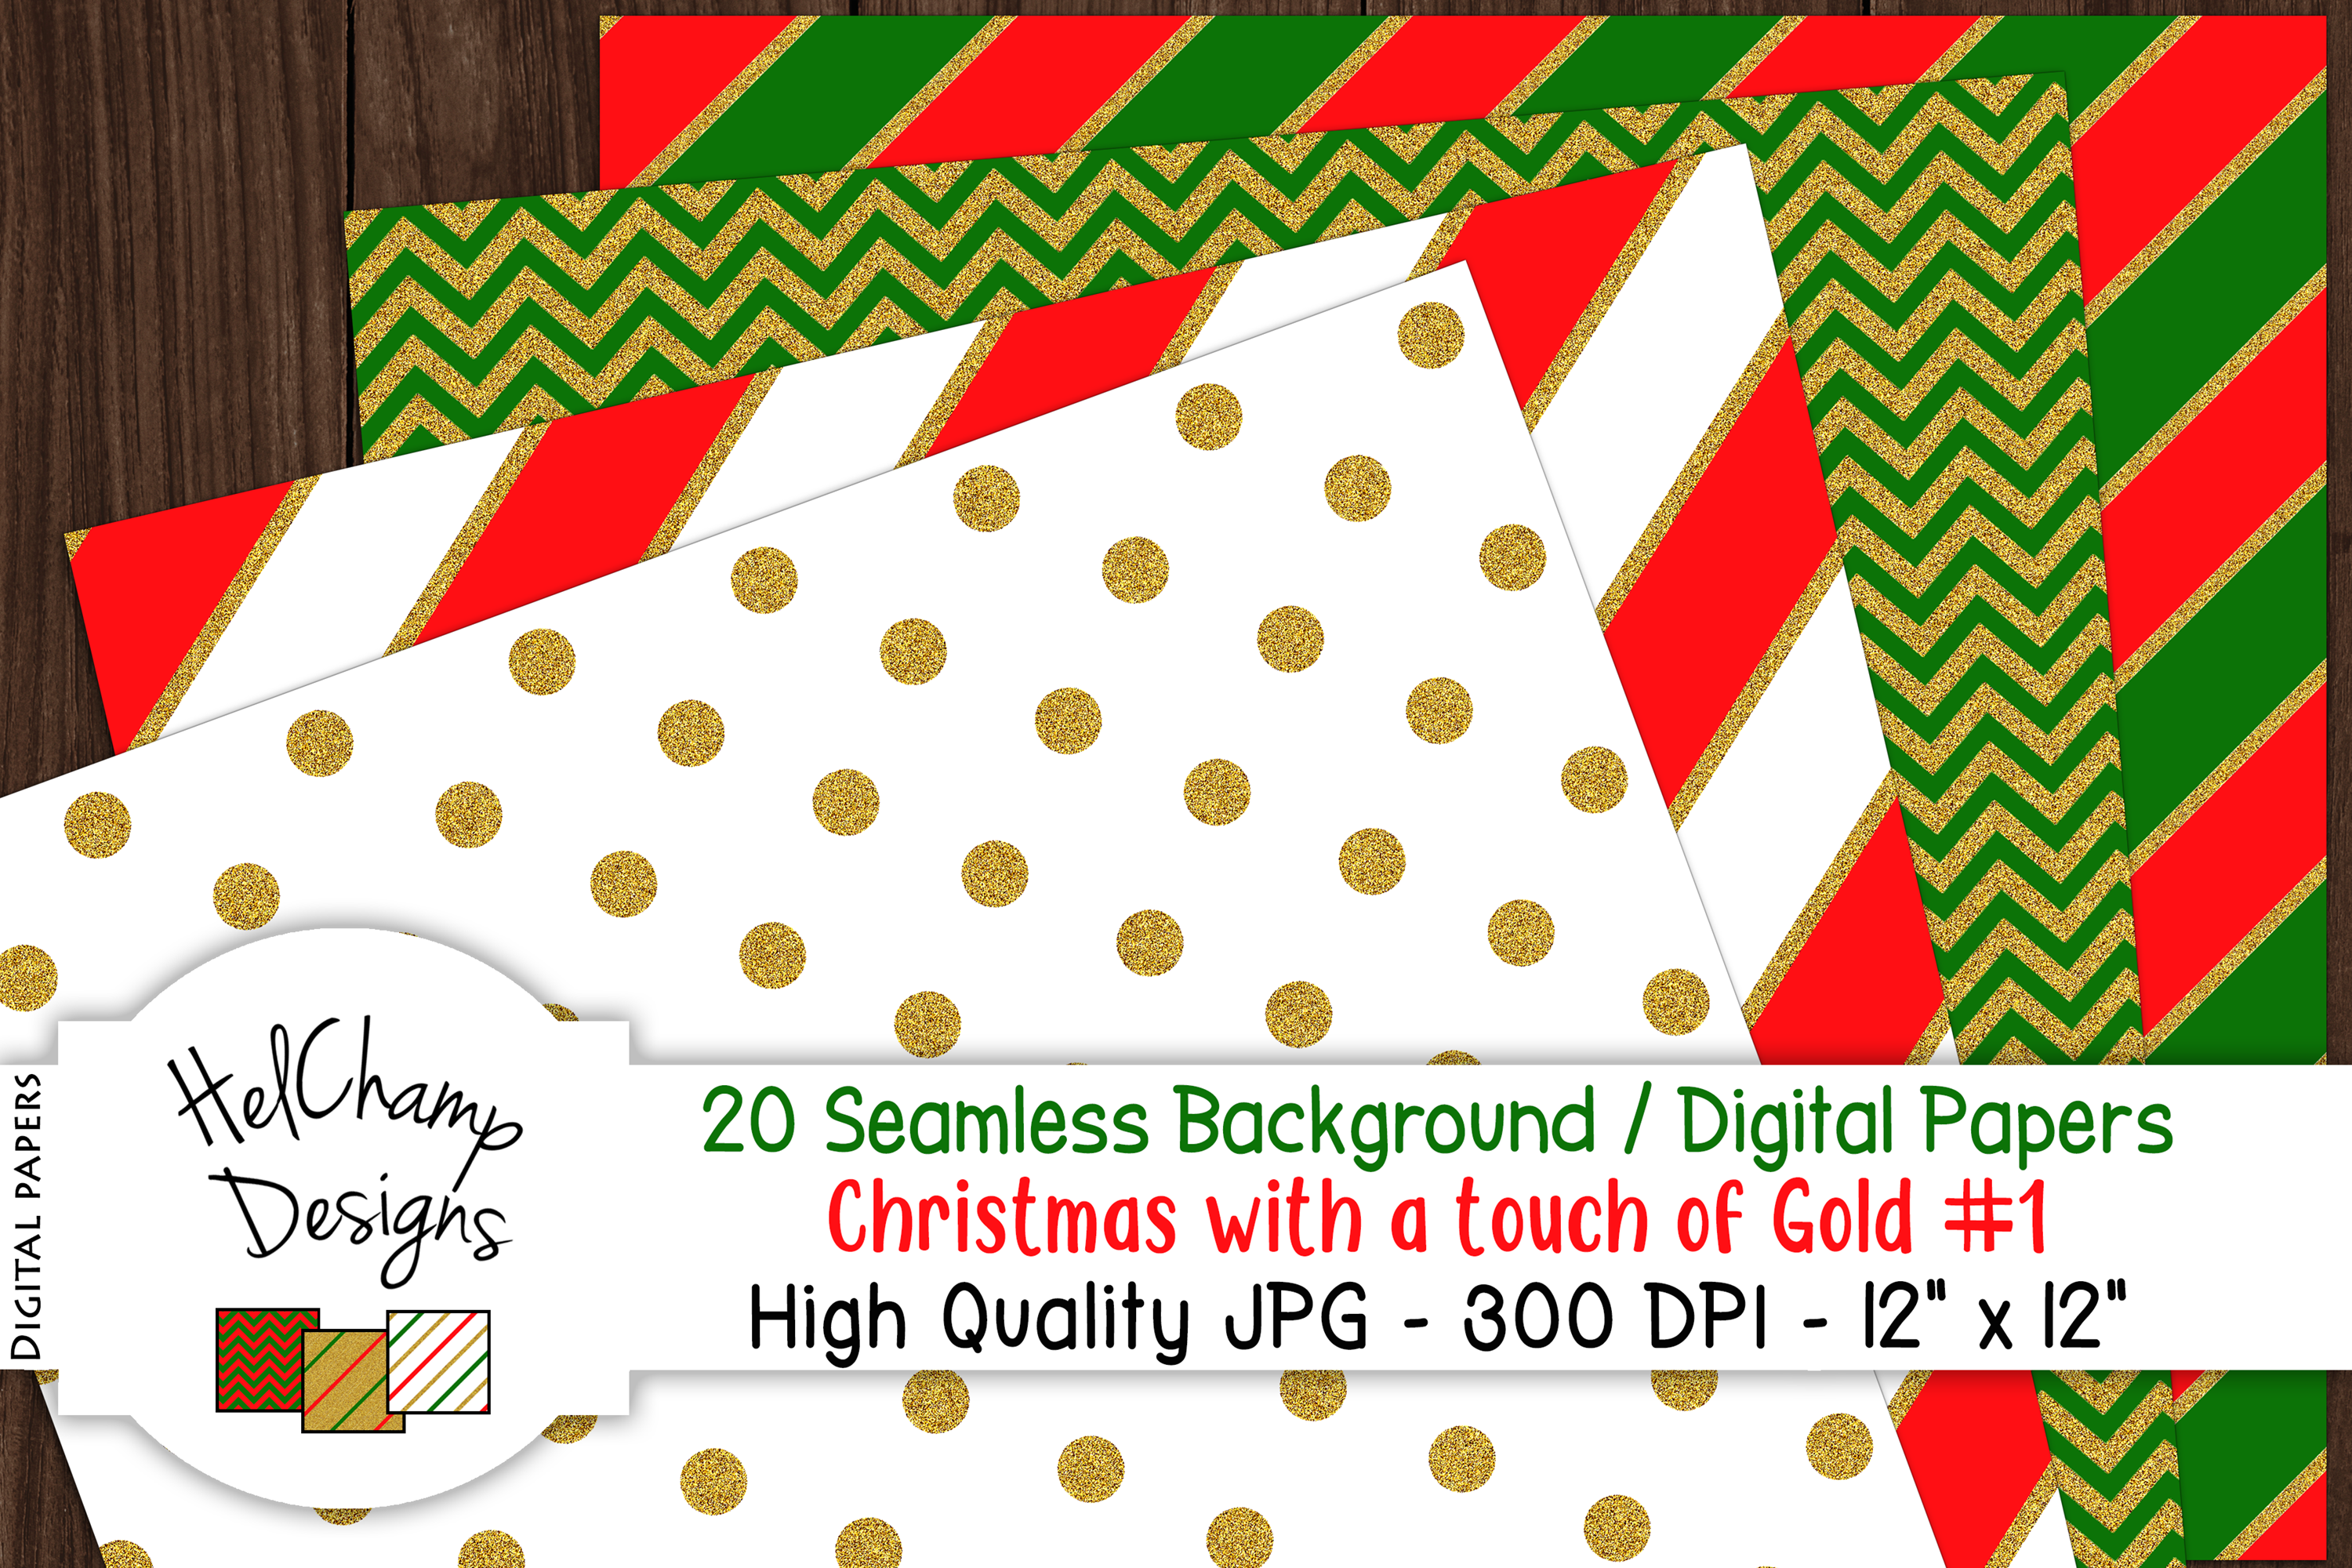 20 seamless Digital Papers - Christmas with Gold - HC006 example image 2